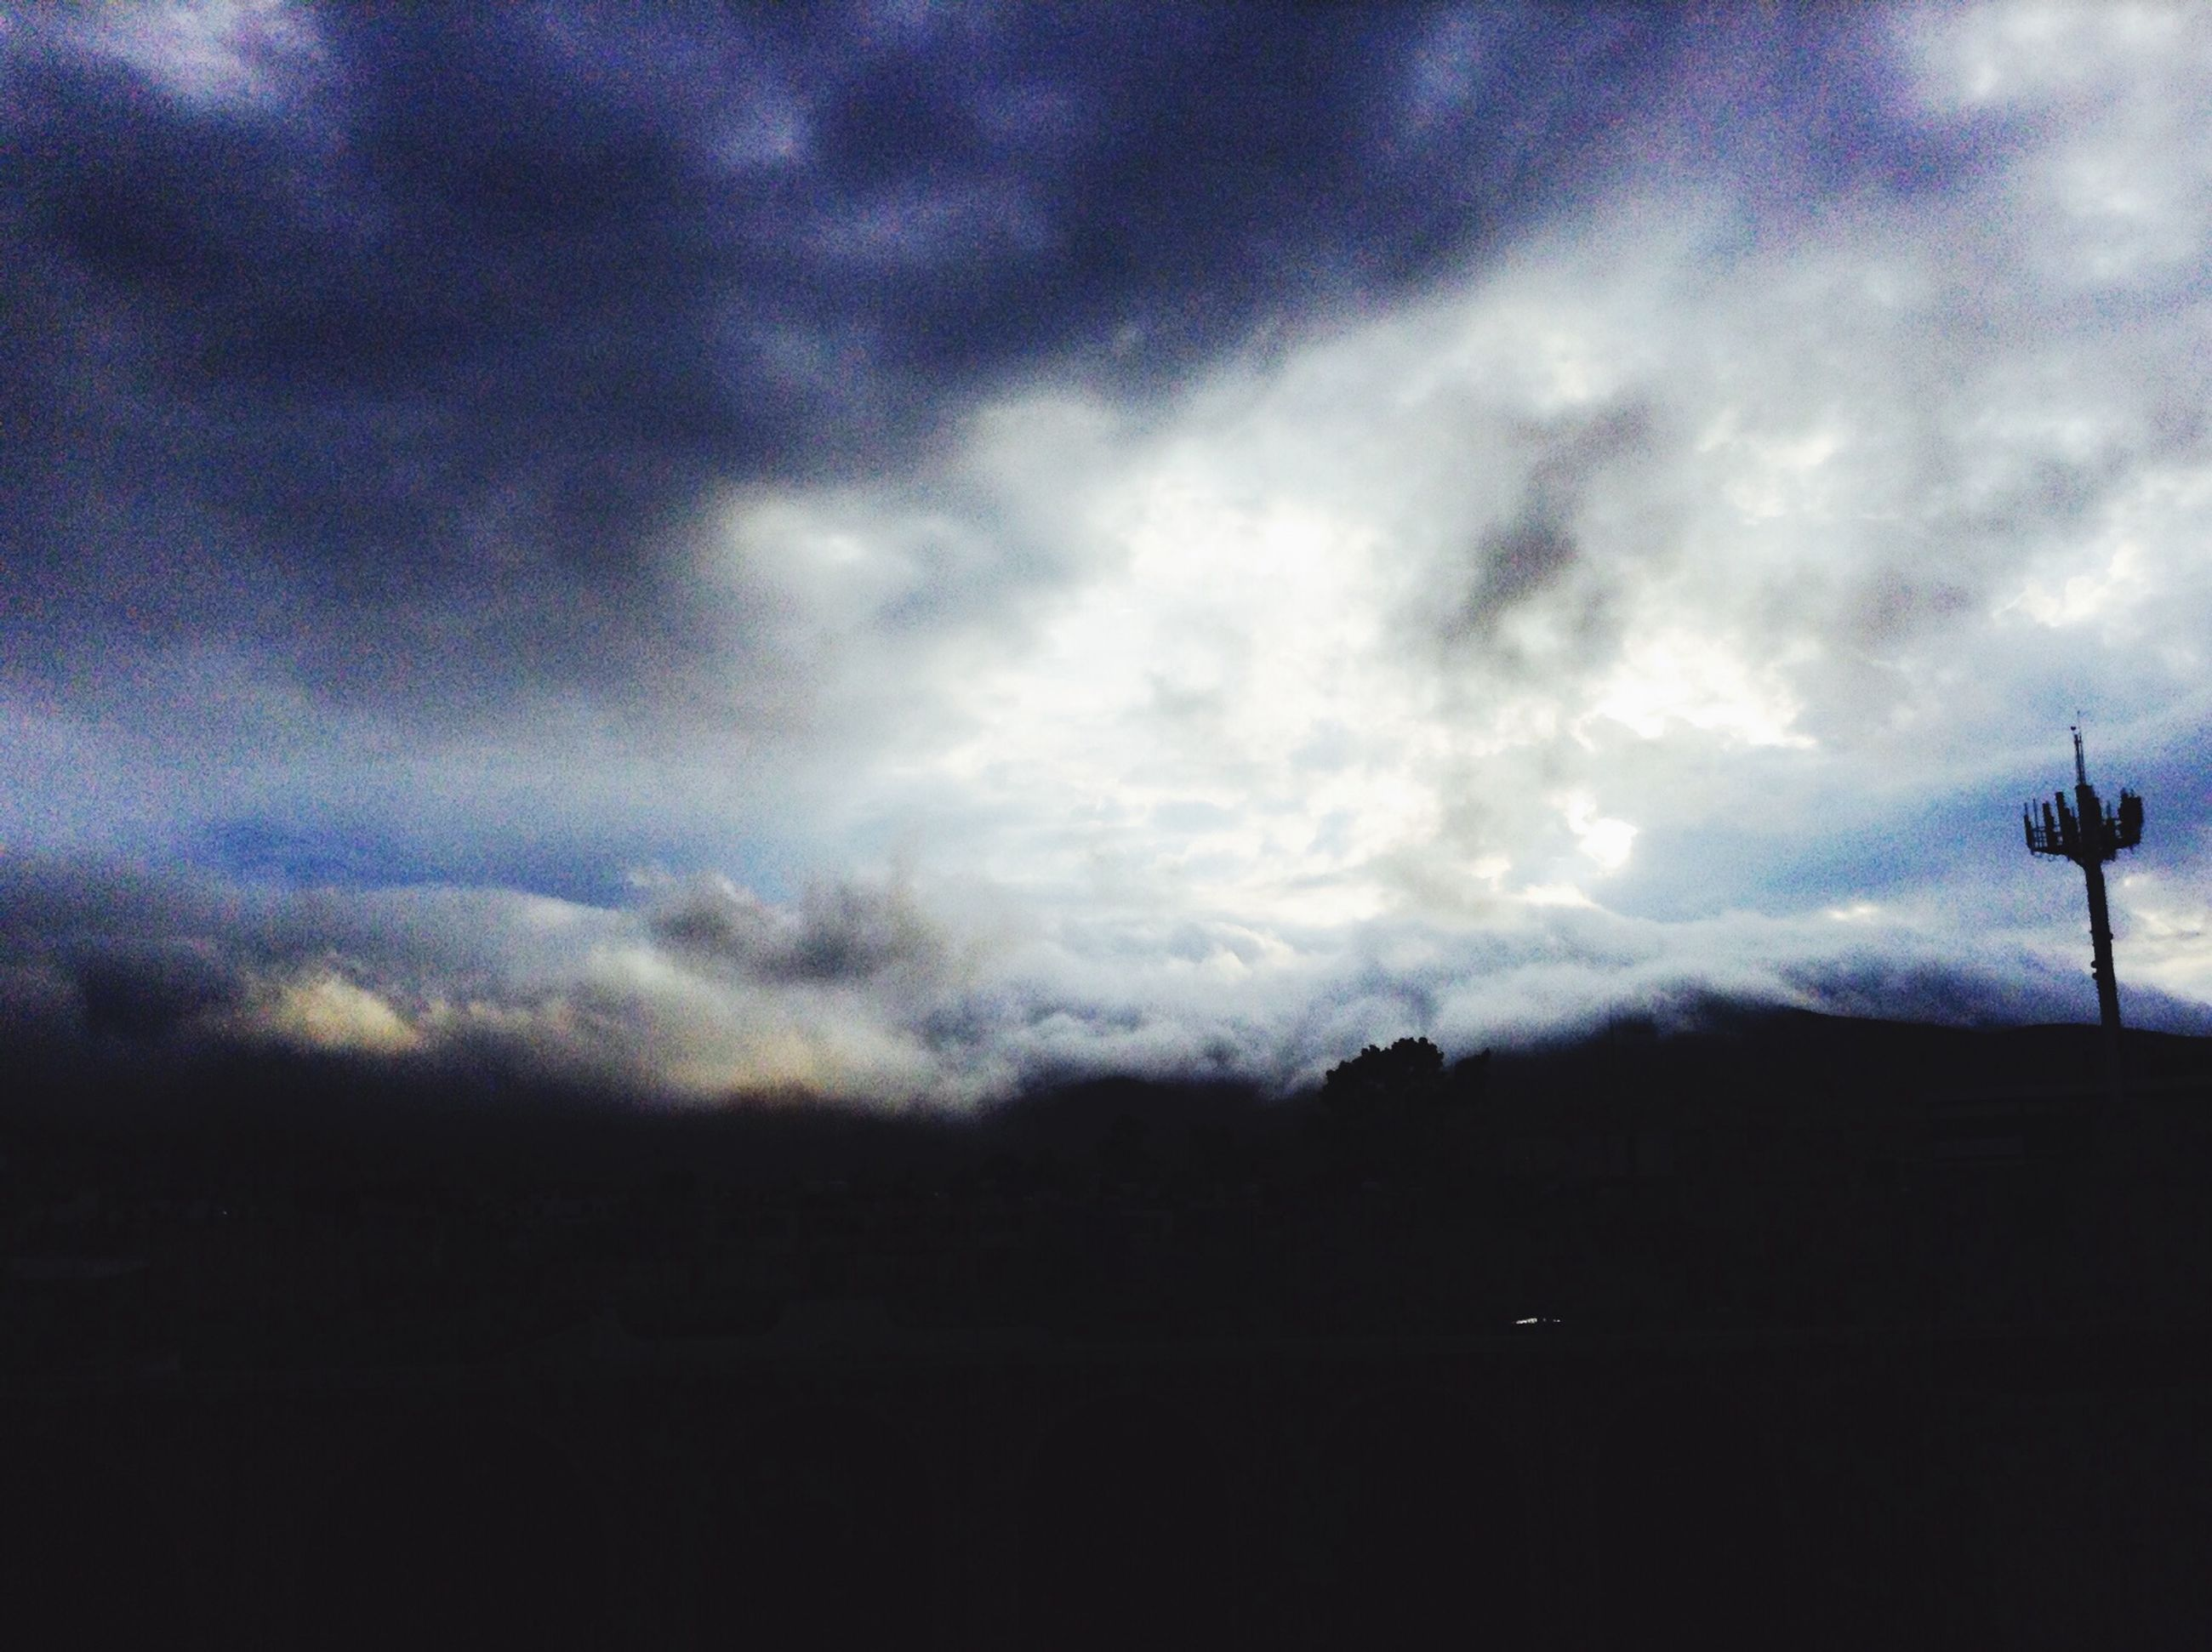 sky, silhouette, cloud - sky, cloudy, tranquility, tranquil scene, scenics, beauty in nature, weather, dusk, nature, landscape, cloud, overcast, low angle view, mountain, outdoors, storm cloud, idyllic, dark